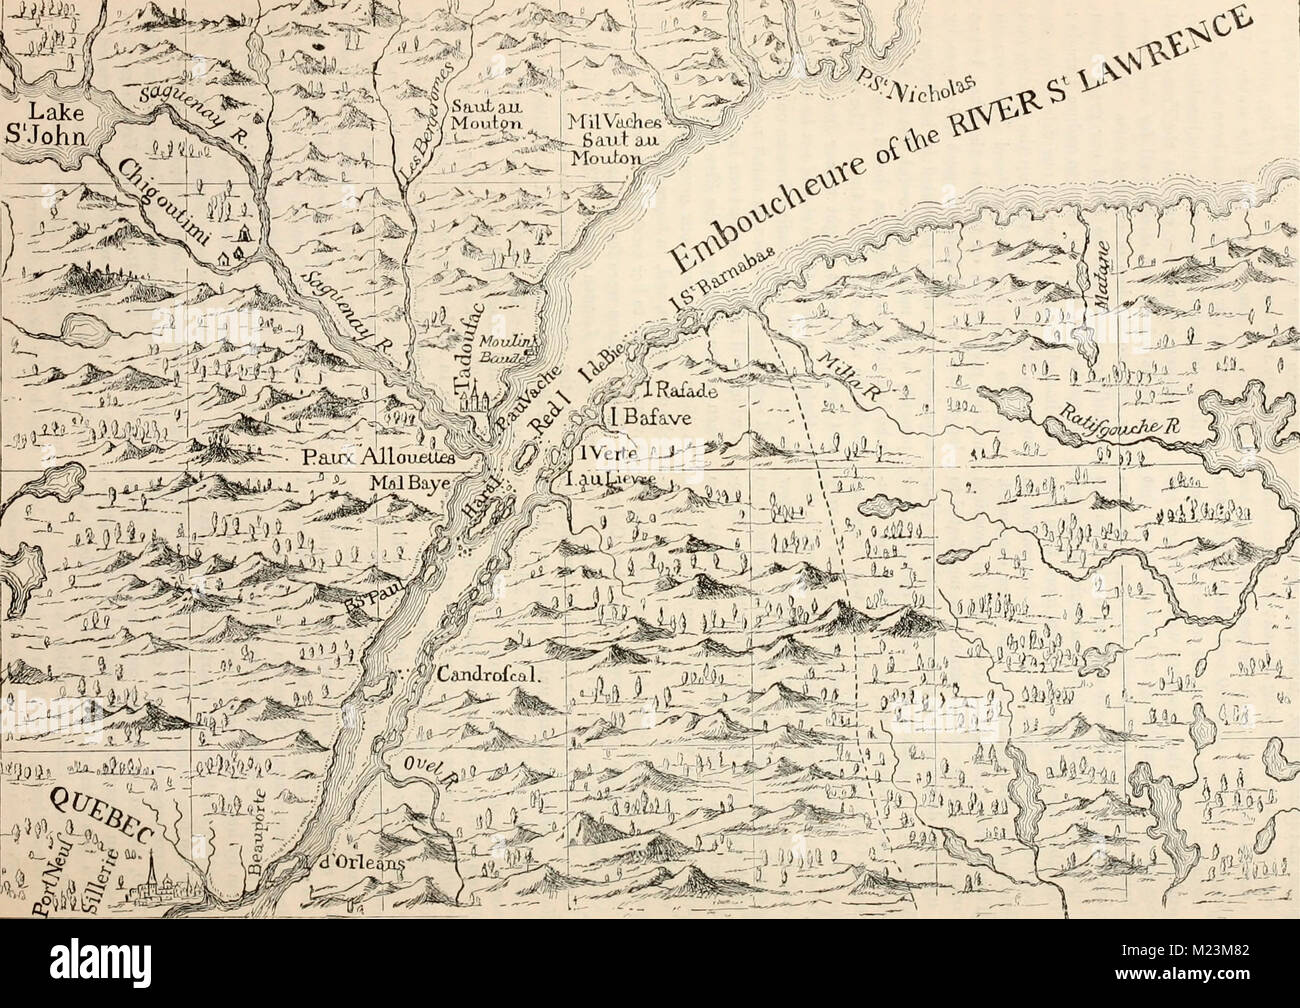 The Course of the River St. Lawrence as far as Quebec, circa 1700 - Stock Image